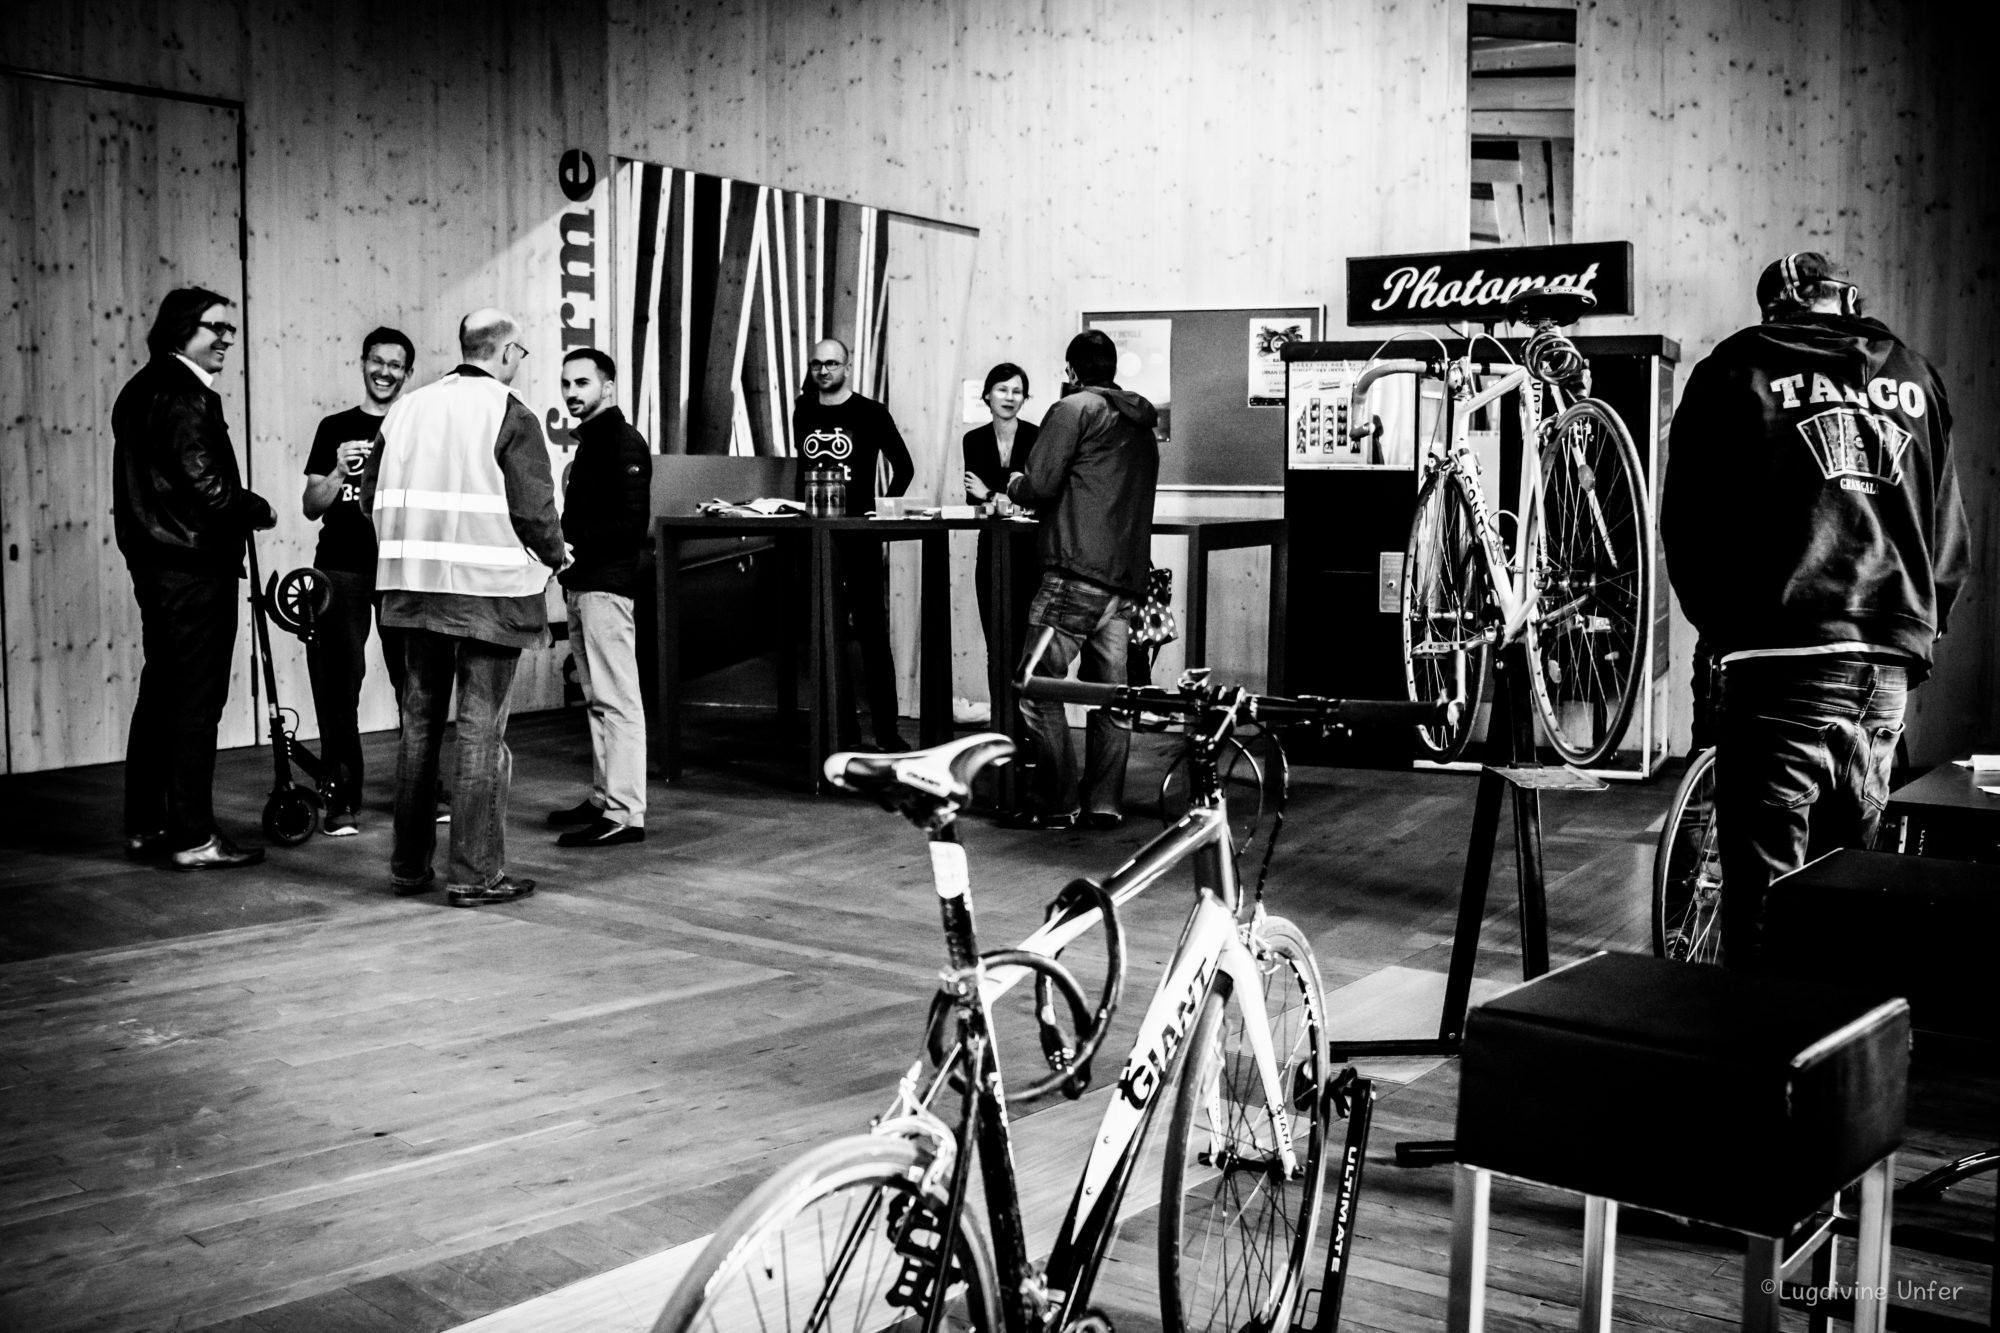 B_W-Bloft-FilmNight-Rotondes-Luxembourg-27042017-by-Lugdivine-Unfer-30